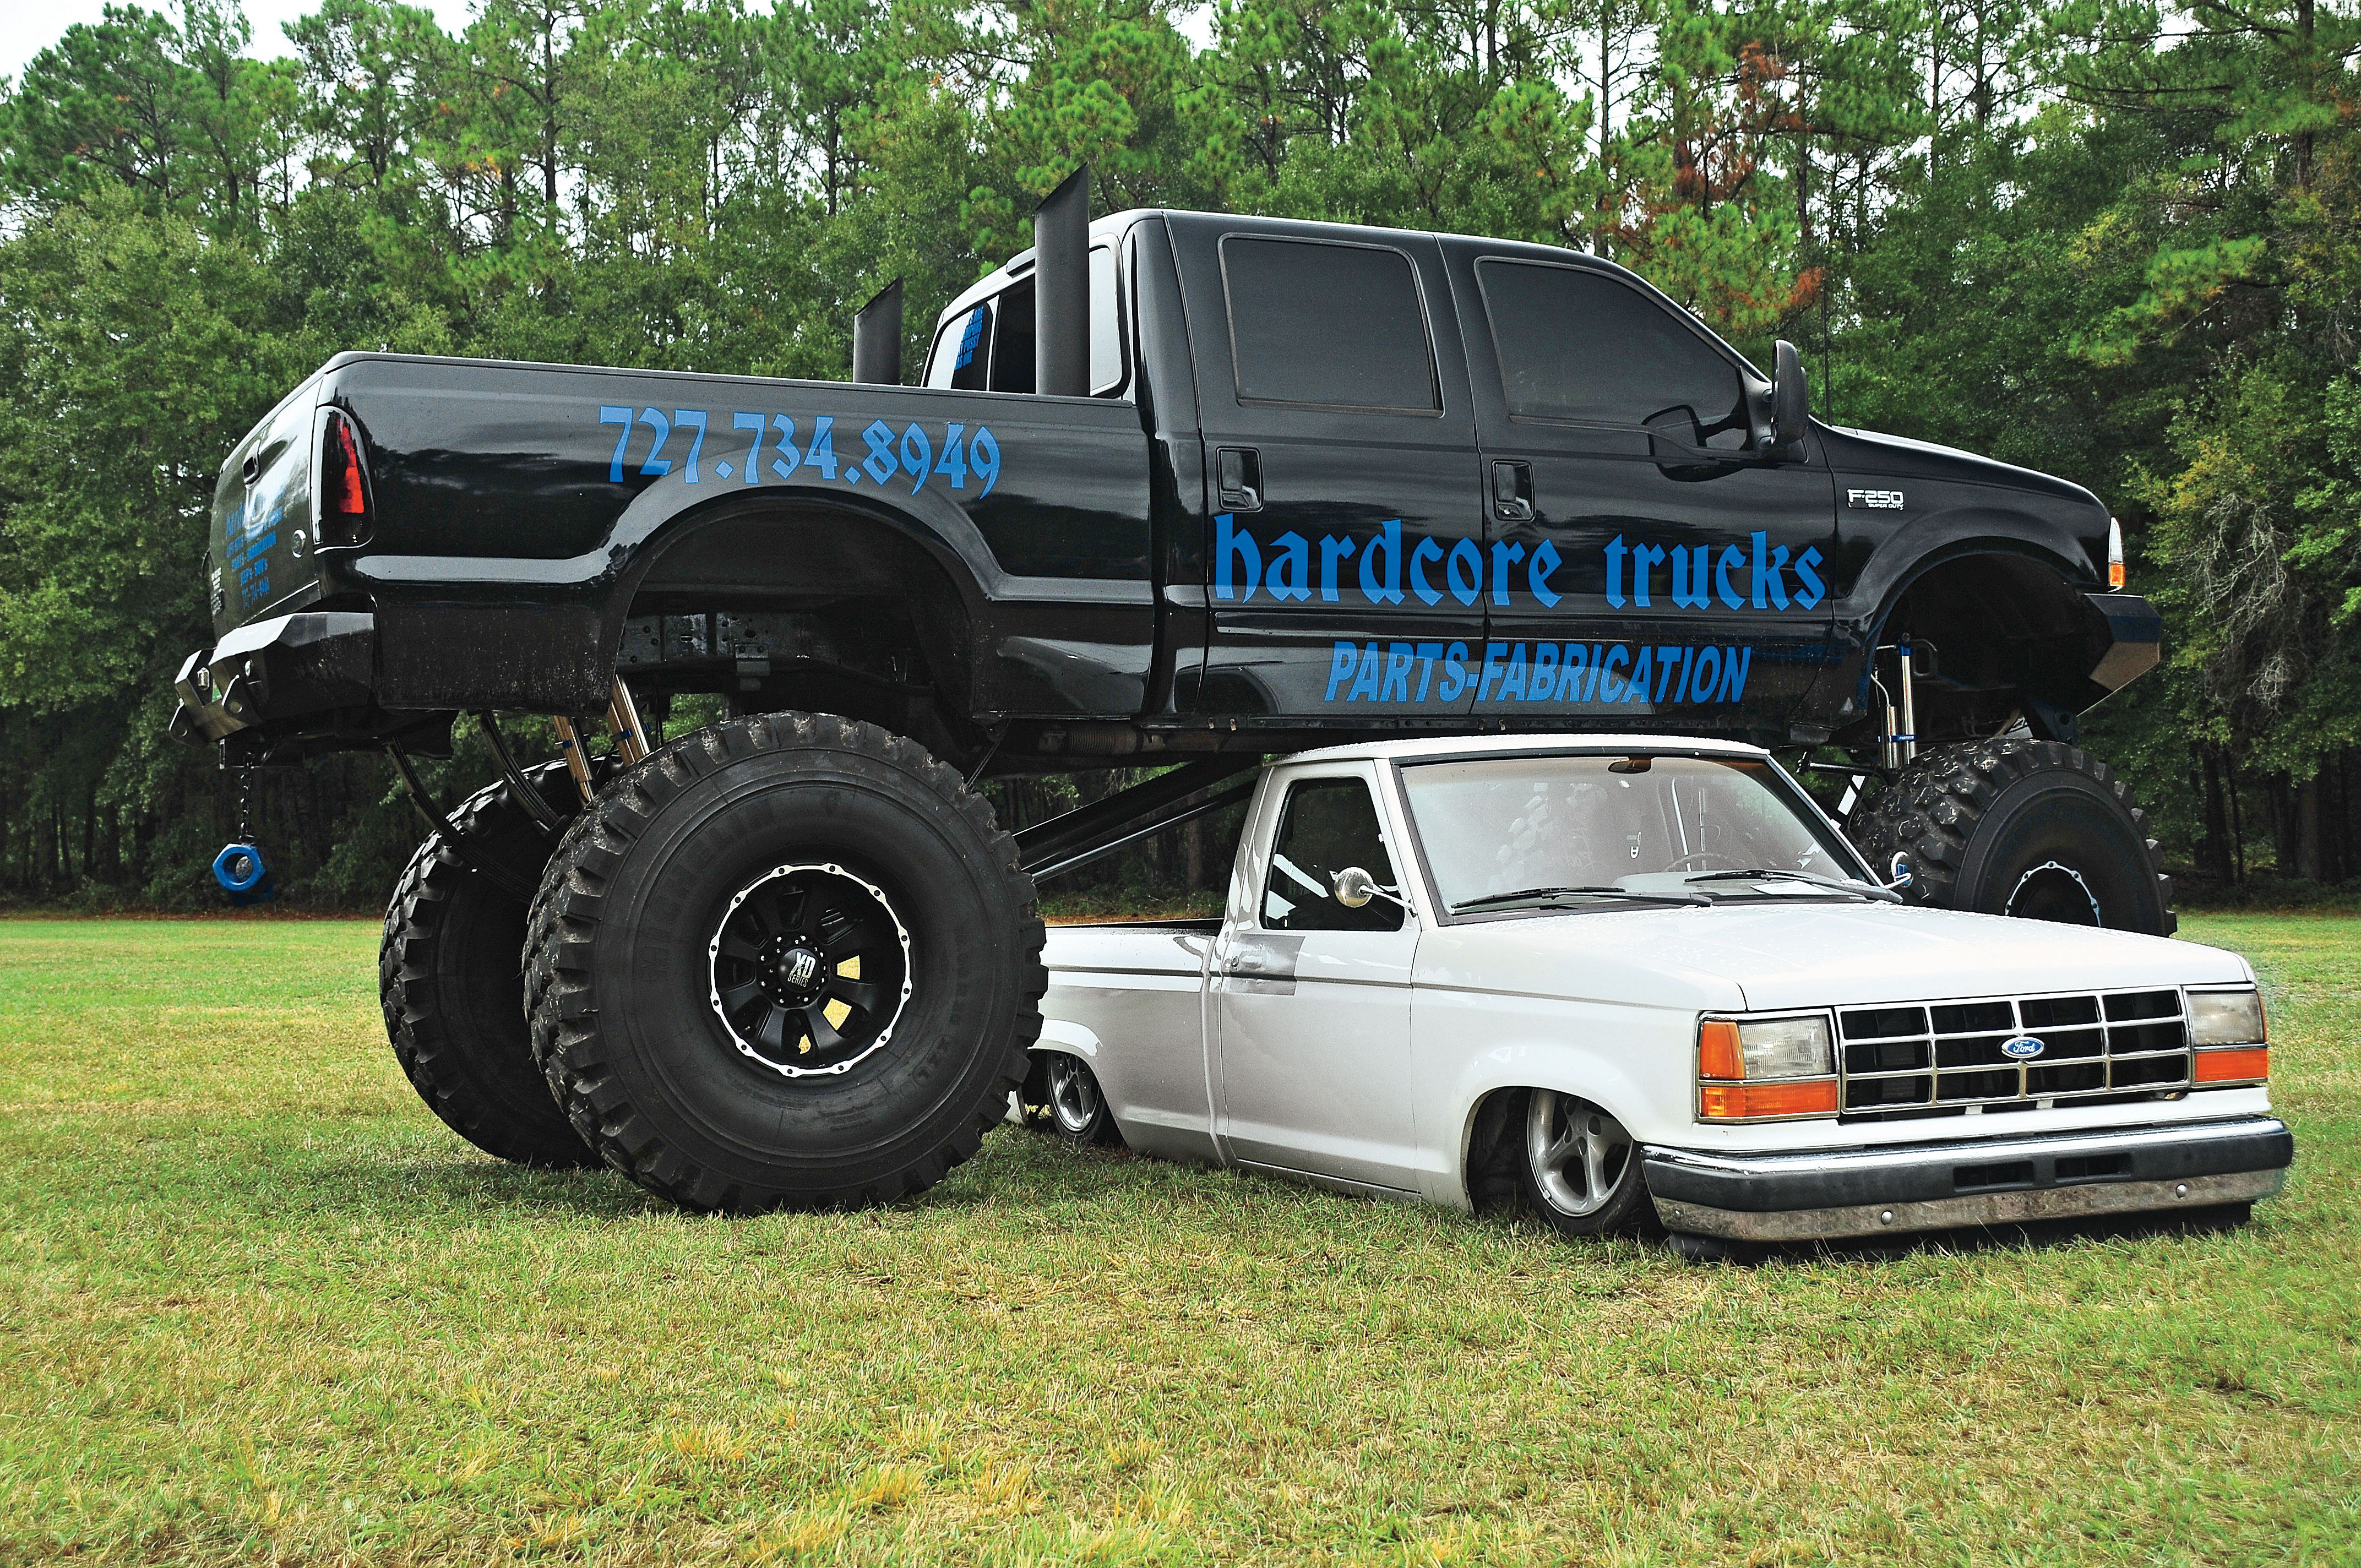 Big Ford Mud Trucks | New Car: big lifted ford trucks wallpaper ...